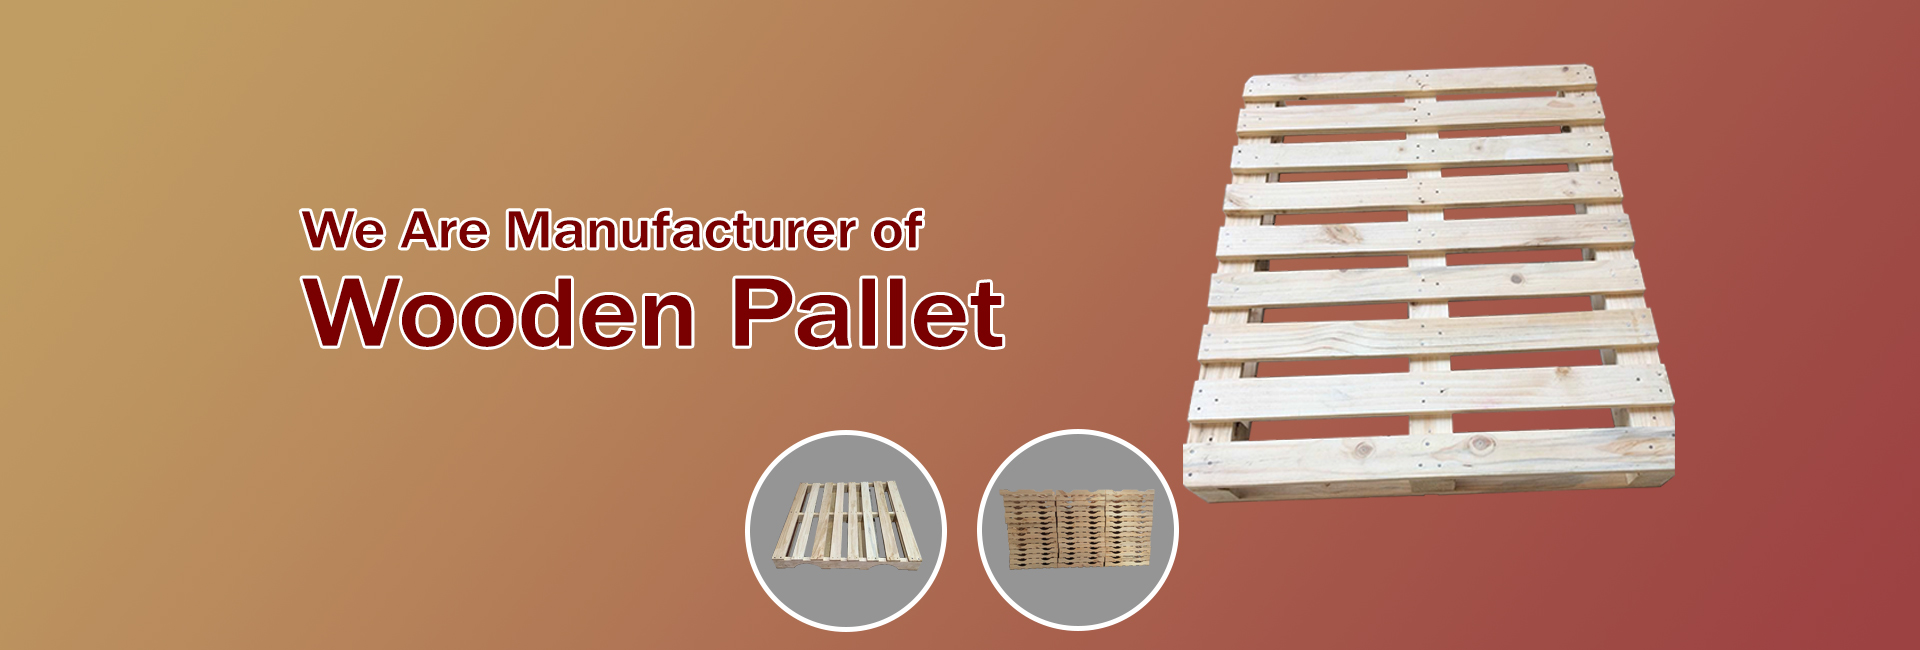 Wooden Pallets, Industrial Wooden Pallets